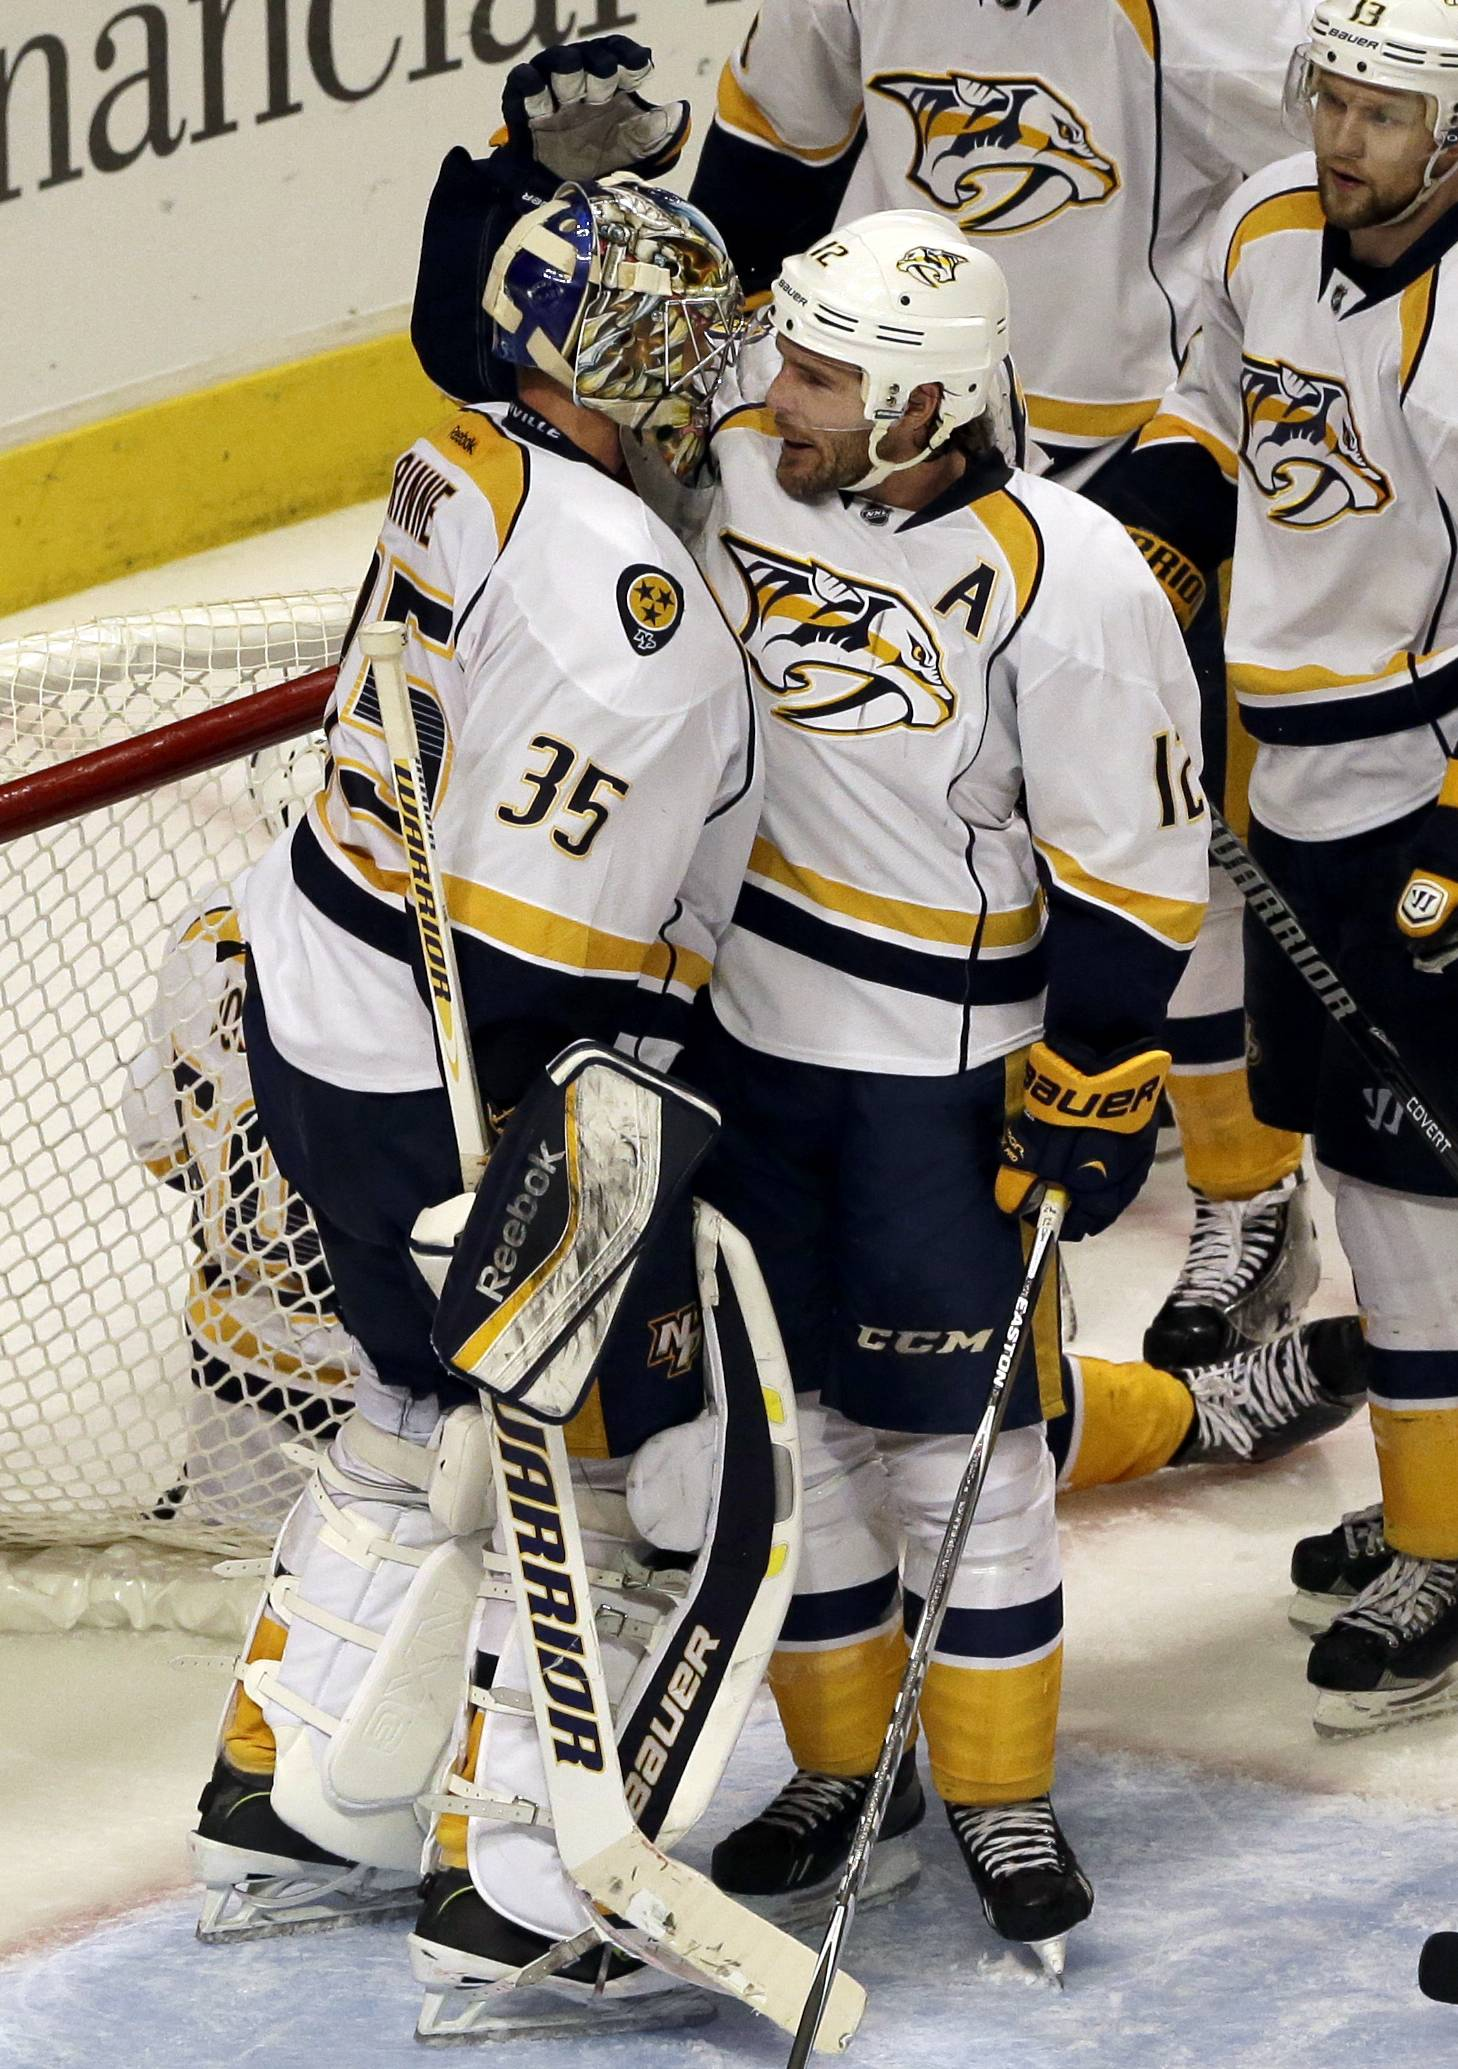 Nashville Predators goalie Pekka Rinne (35) celebrates with Mike Fisher (12) after they defeated the Chicago Blackhawks 3-2 during an NHL hockey game in Chicago, Friday, March 14, 2014.